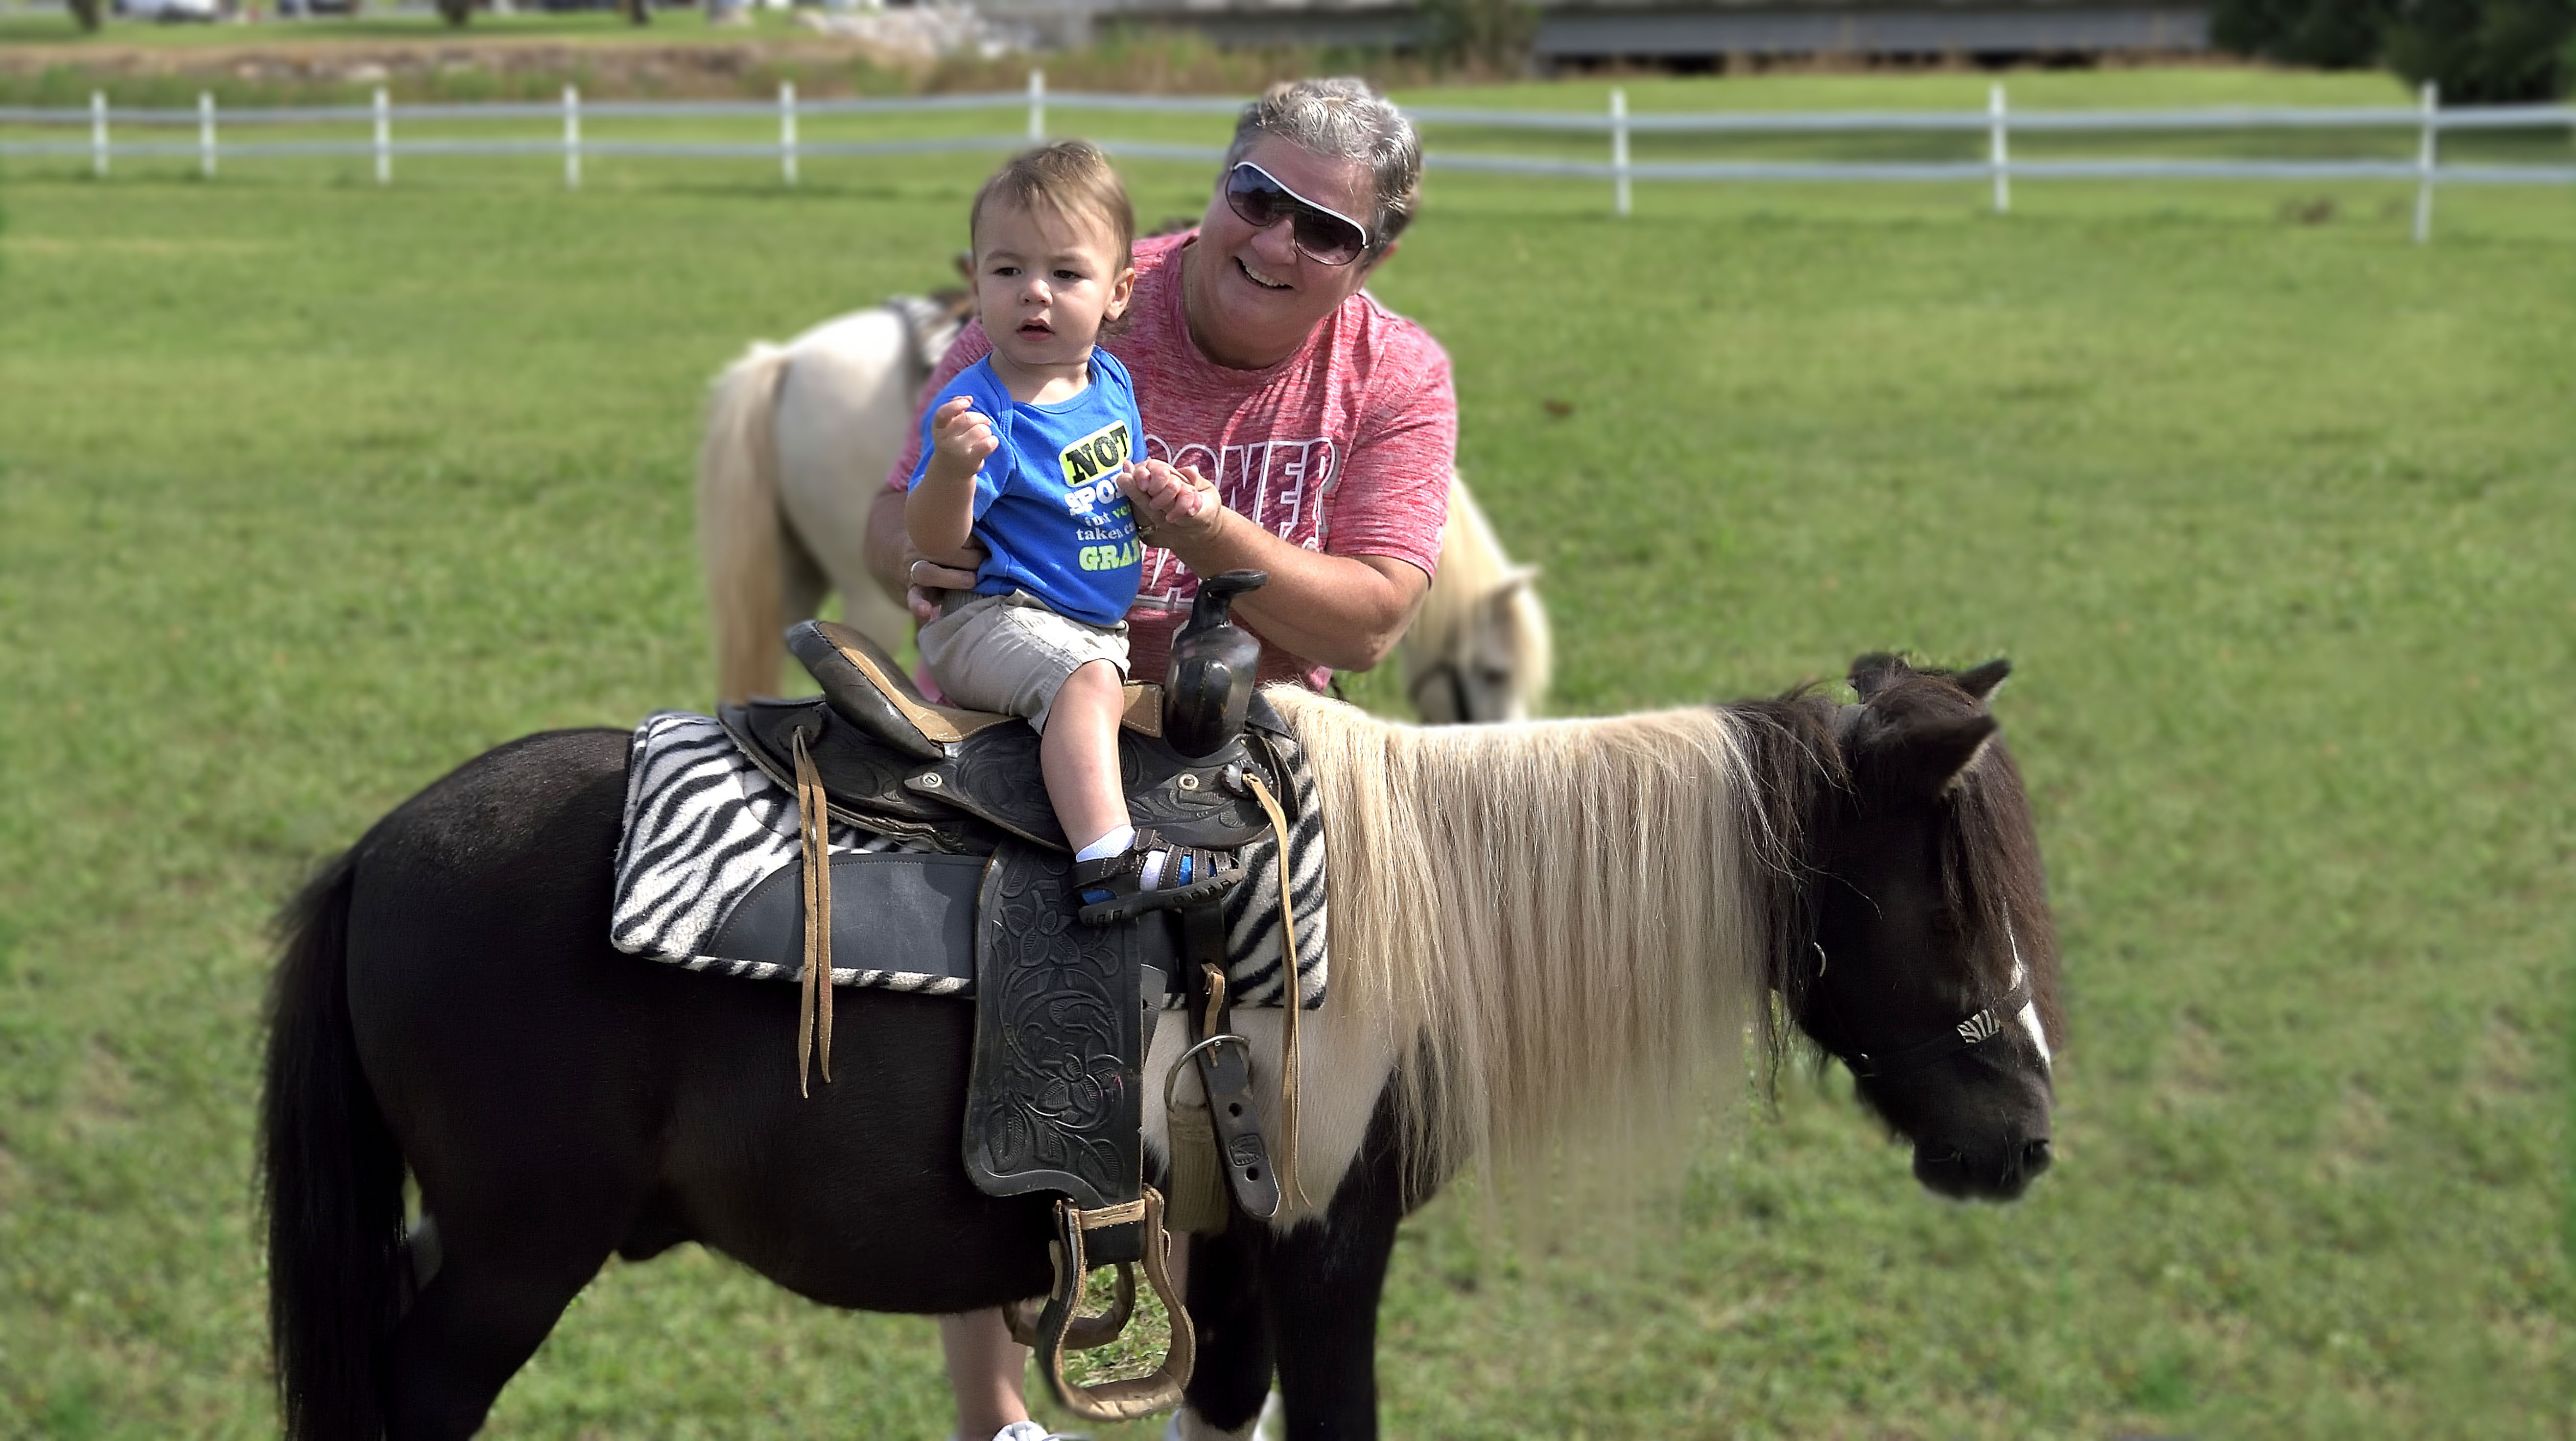 Small child rides a pony at the Atkinson Heritage Center during Heritage Days 2016.